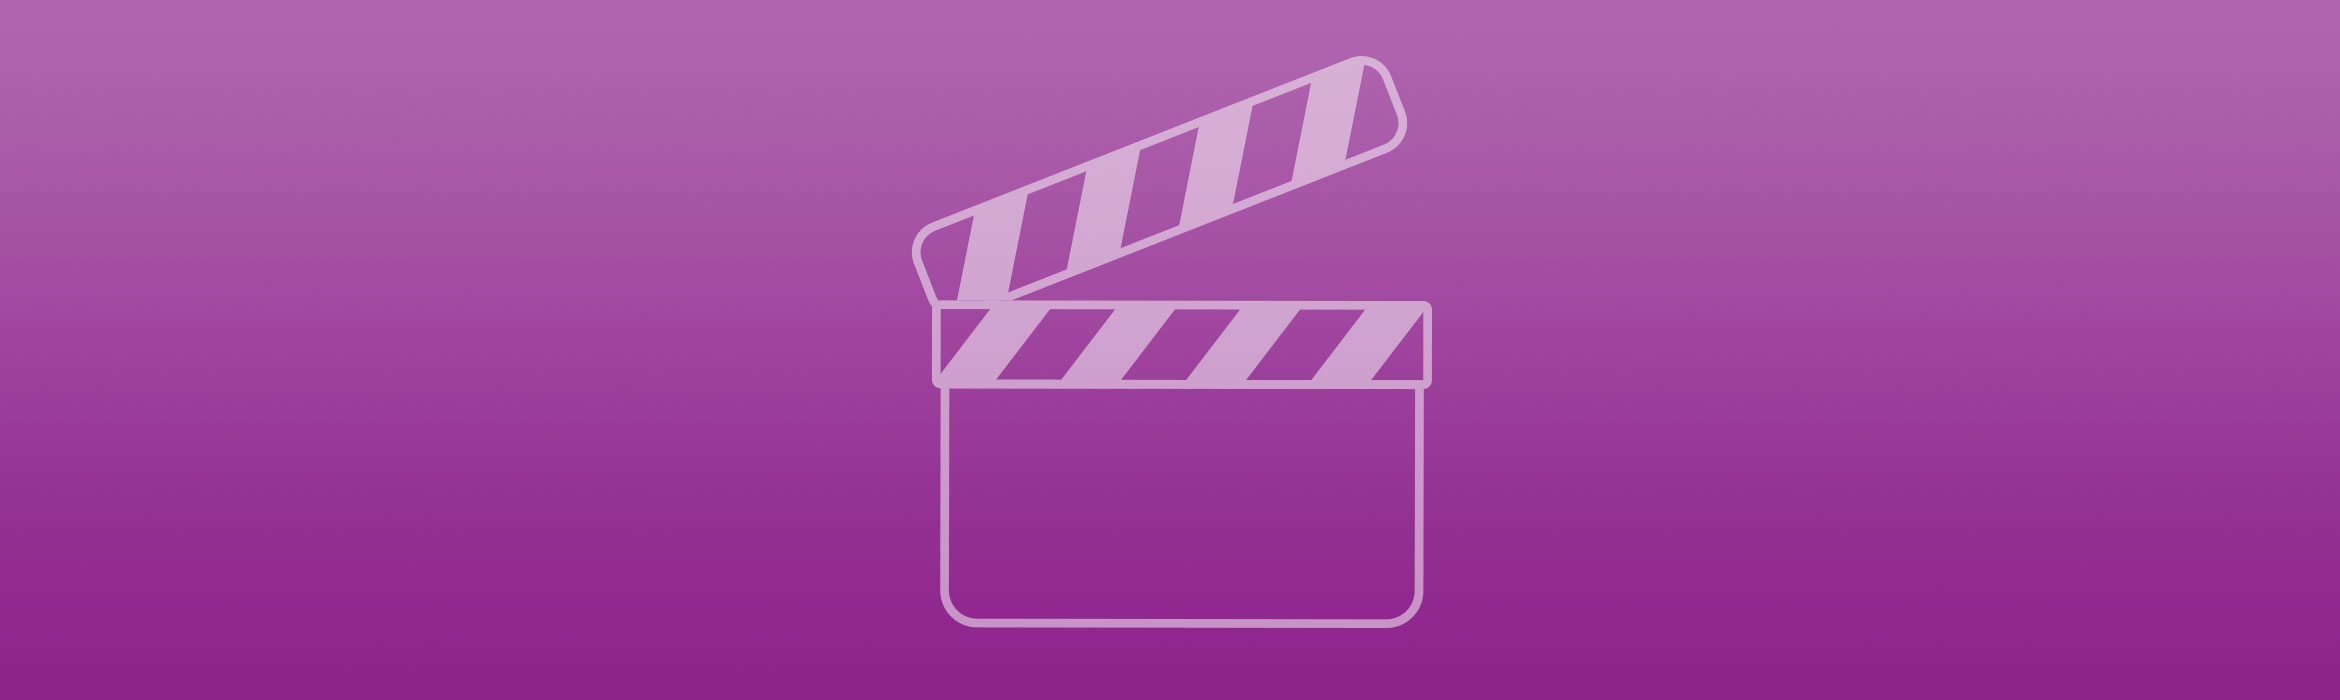 Video gallery on purple background